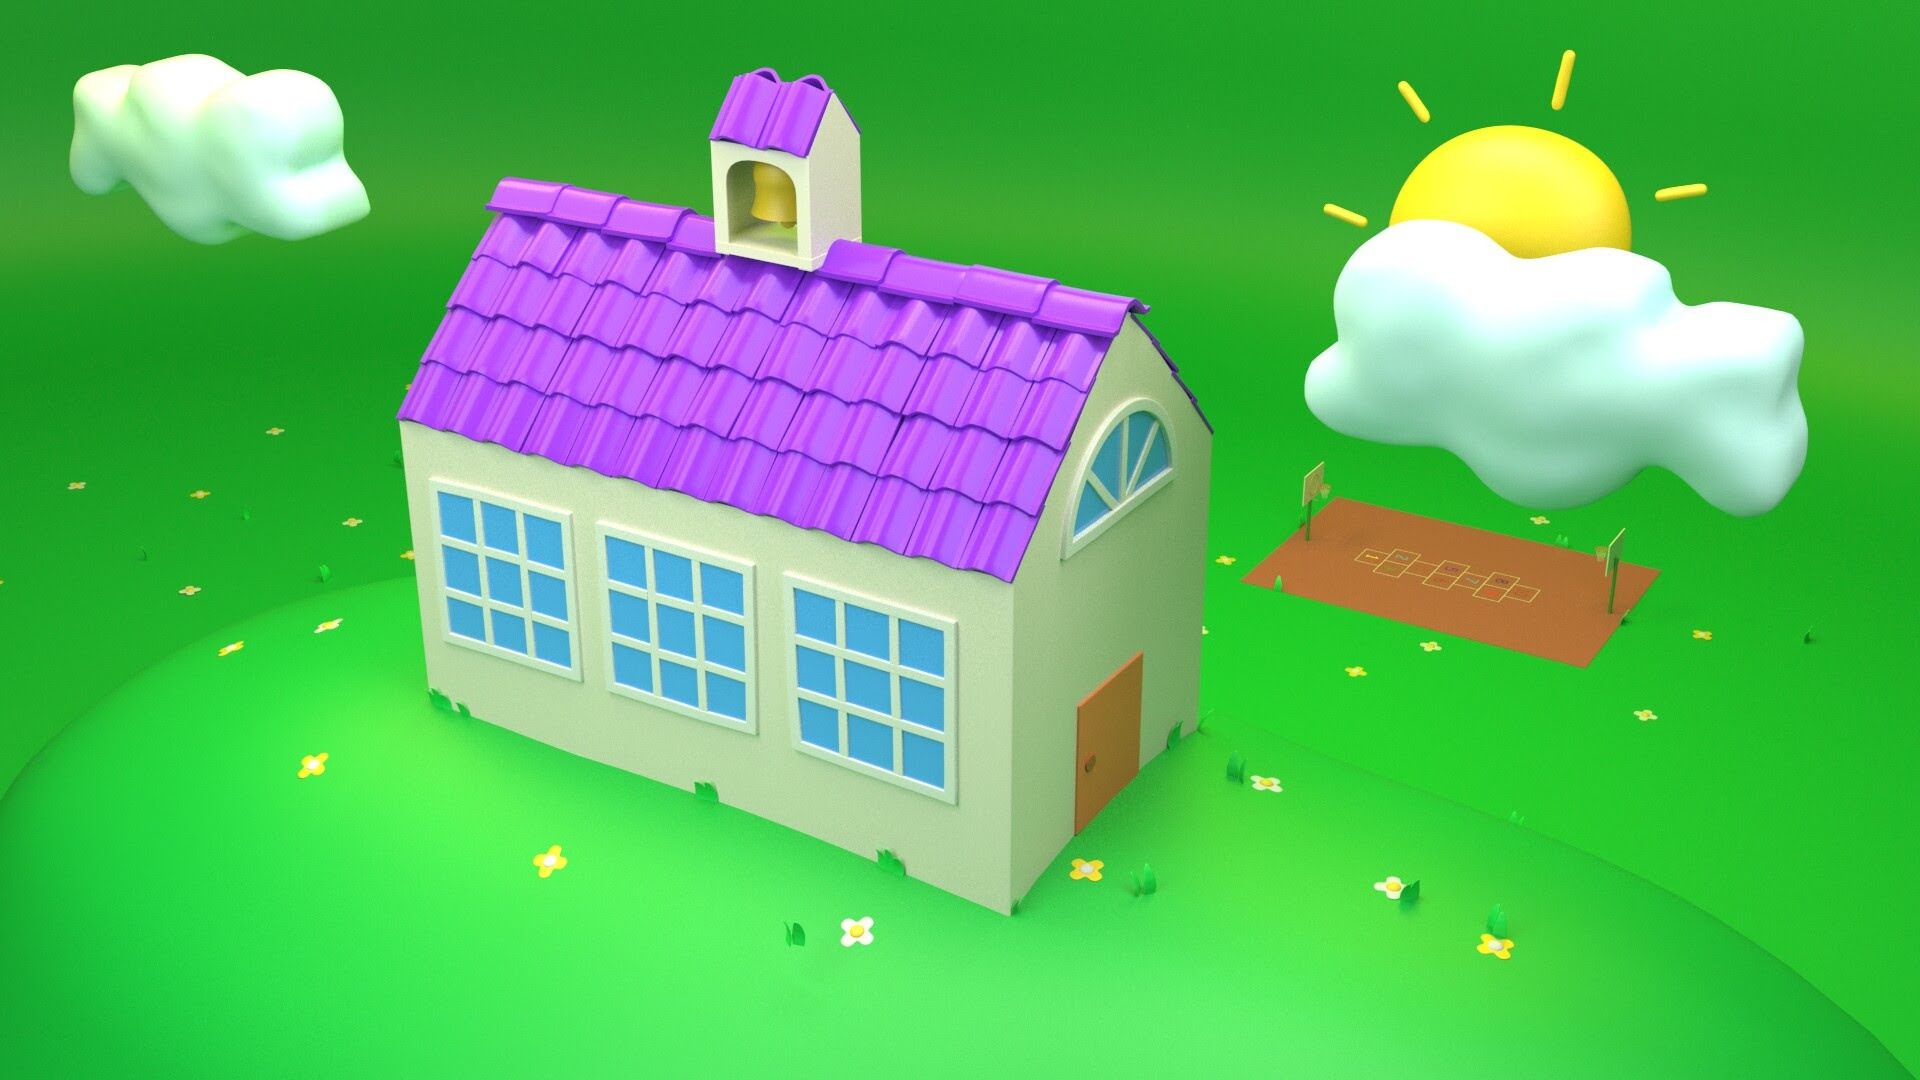 Peppa Pig Wallpapers Top 35 Best Peppa Pig House Backgrounds Download